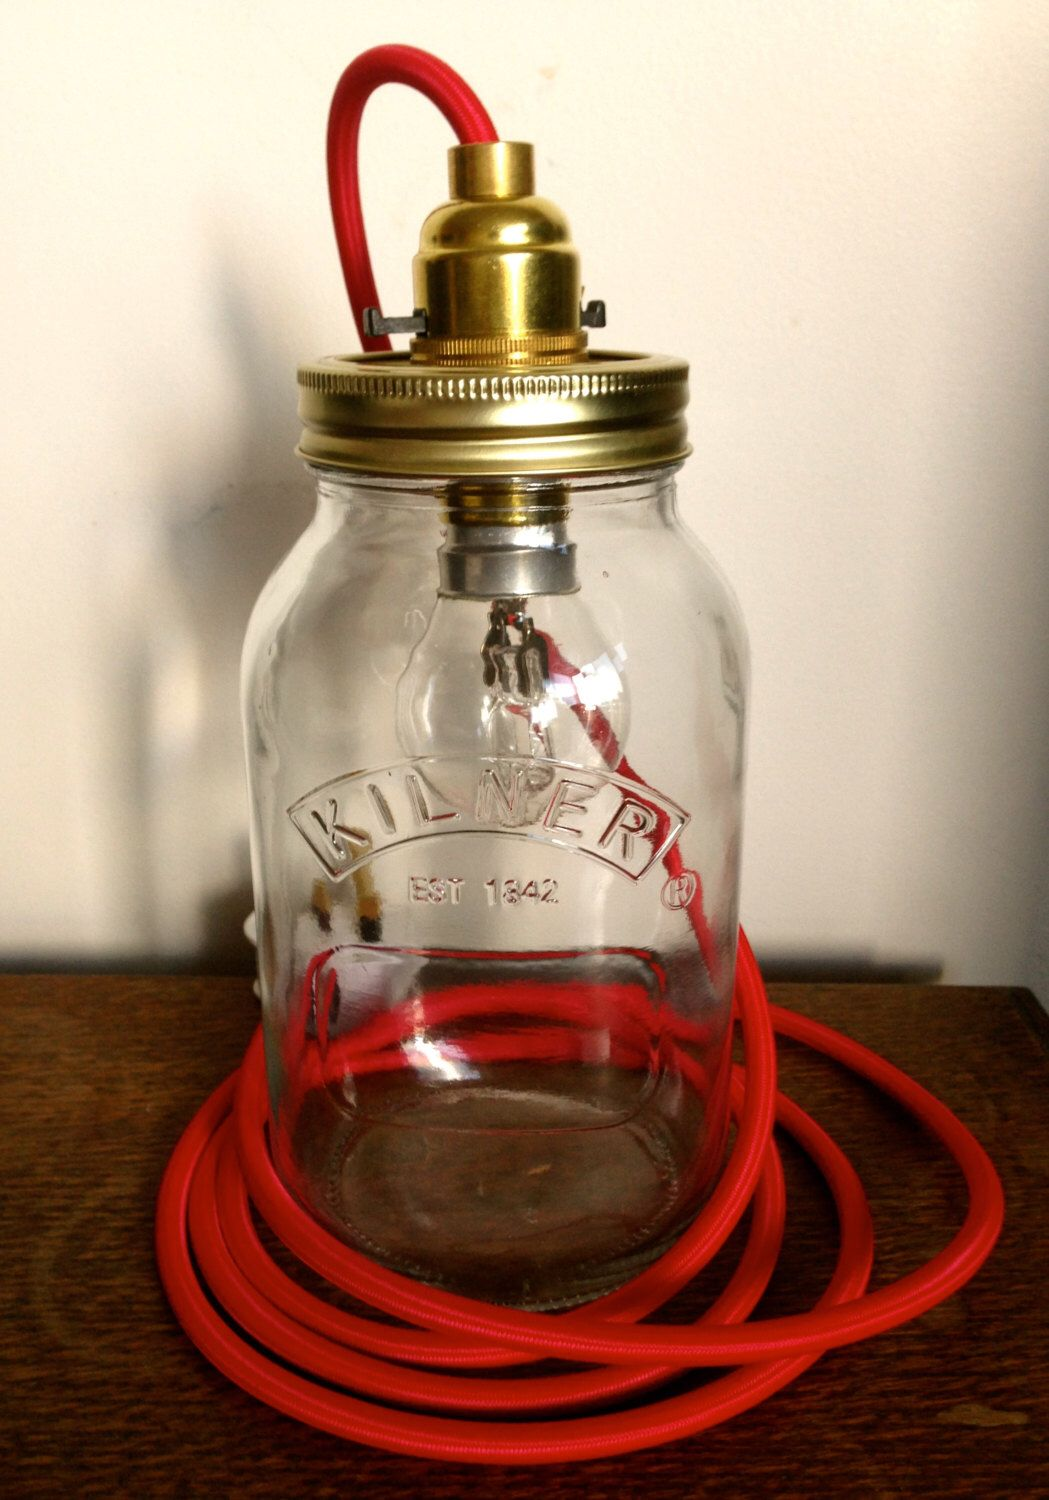 Kilner mason jar lamp with red cable (free UK postage!) by CityLightsLamps on Etsy https://www.etsy.com/listing/206778011/kilner-mason-jar-lamp-with-red-cable